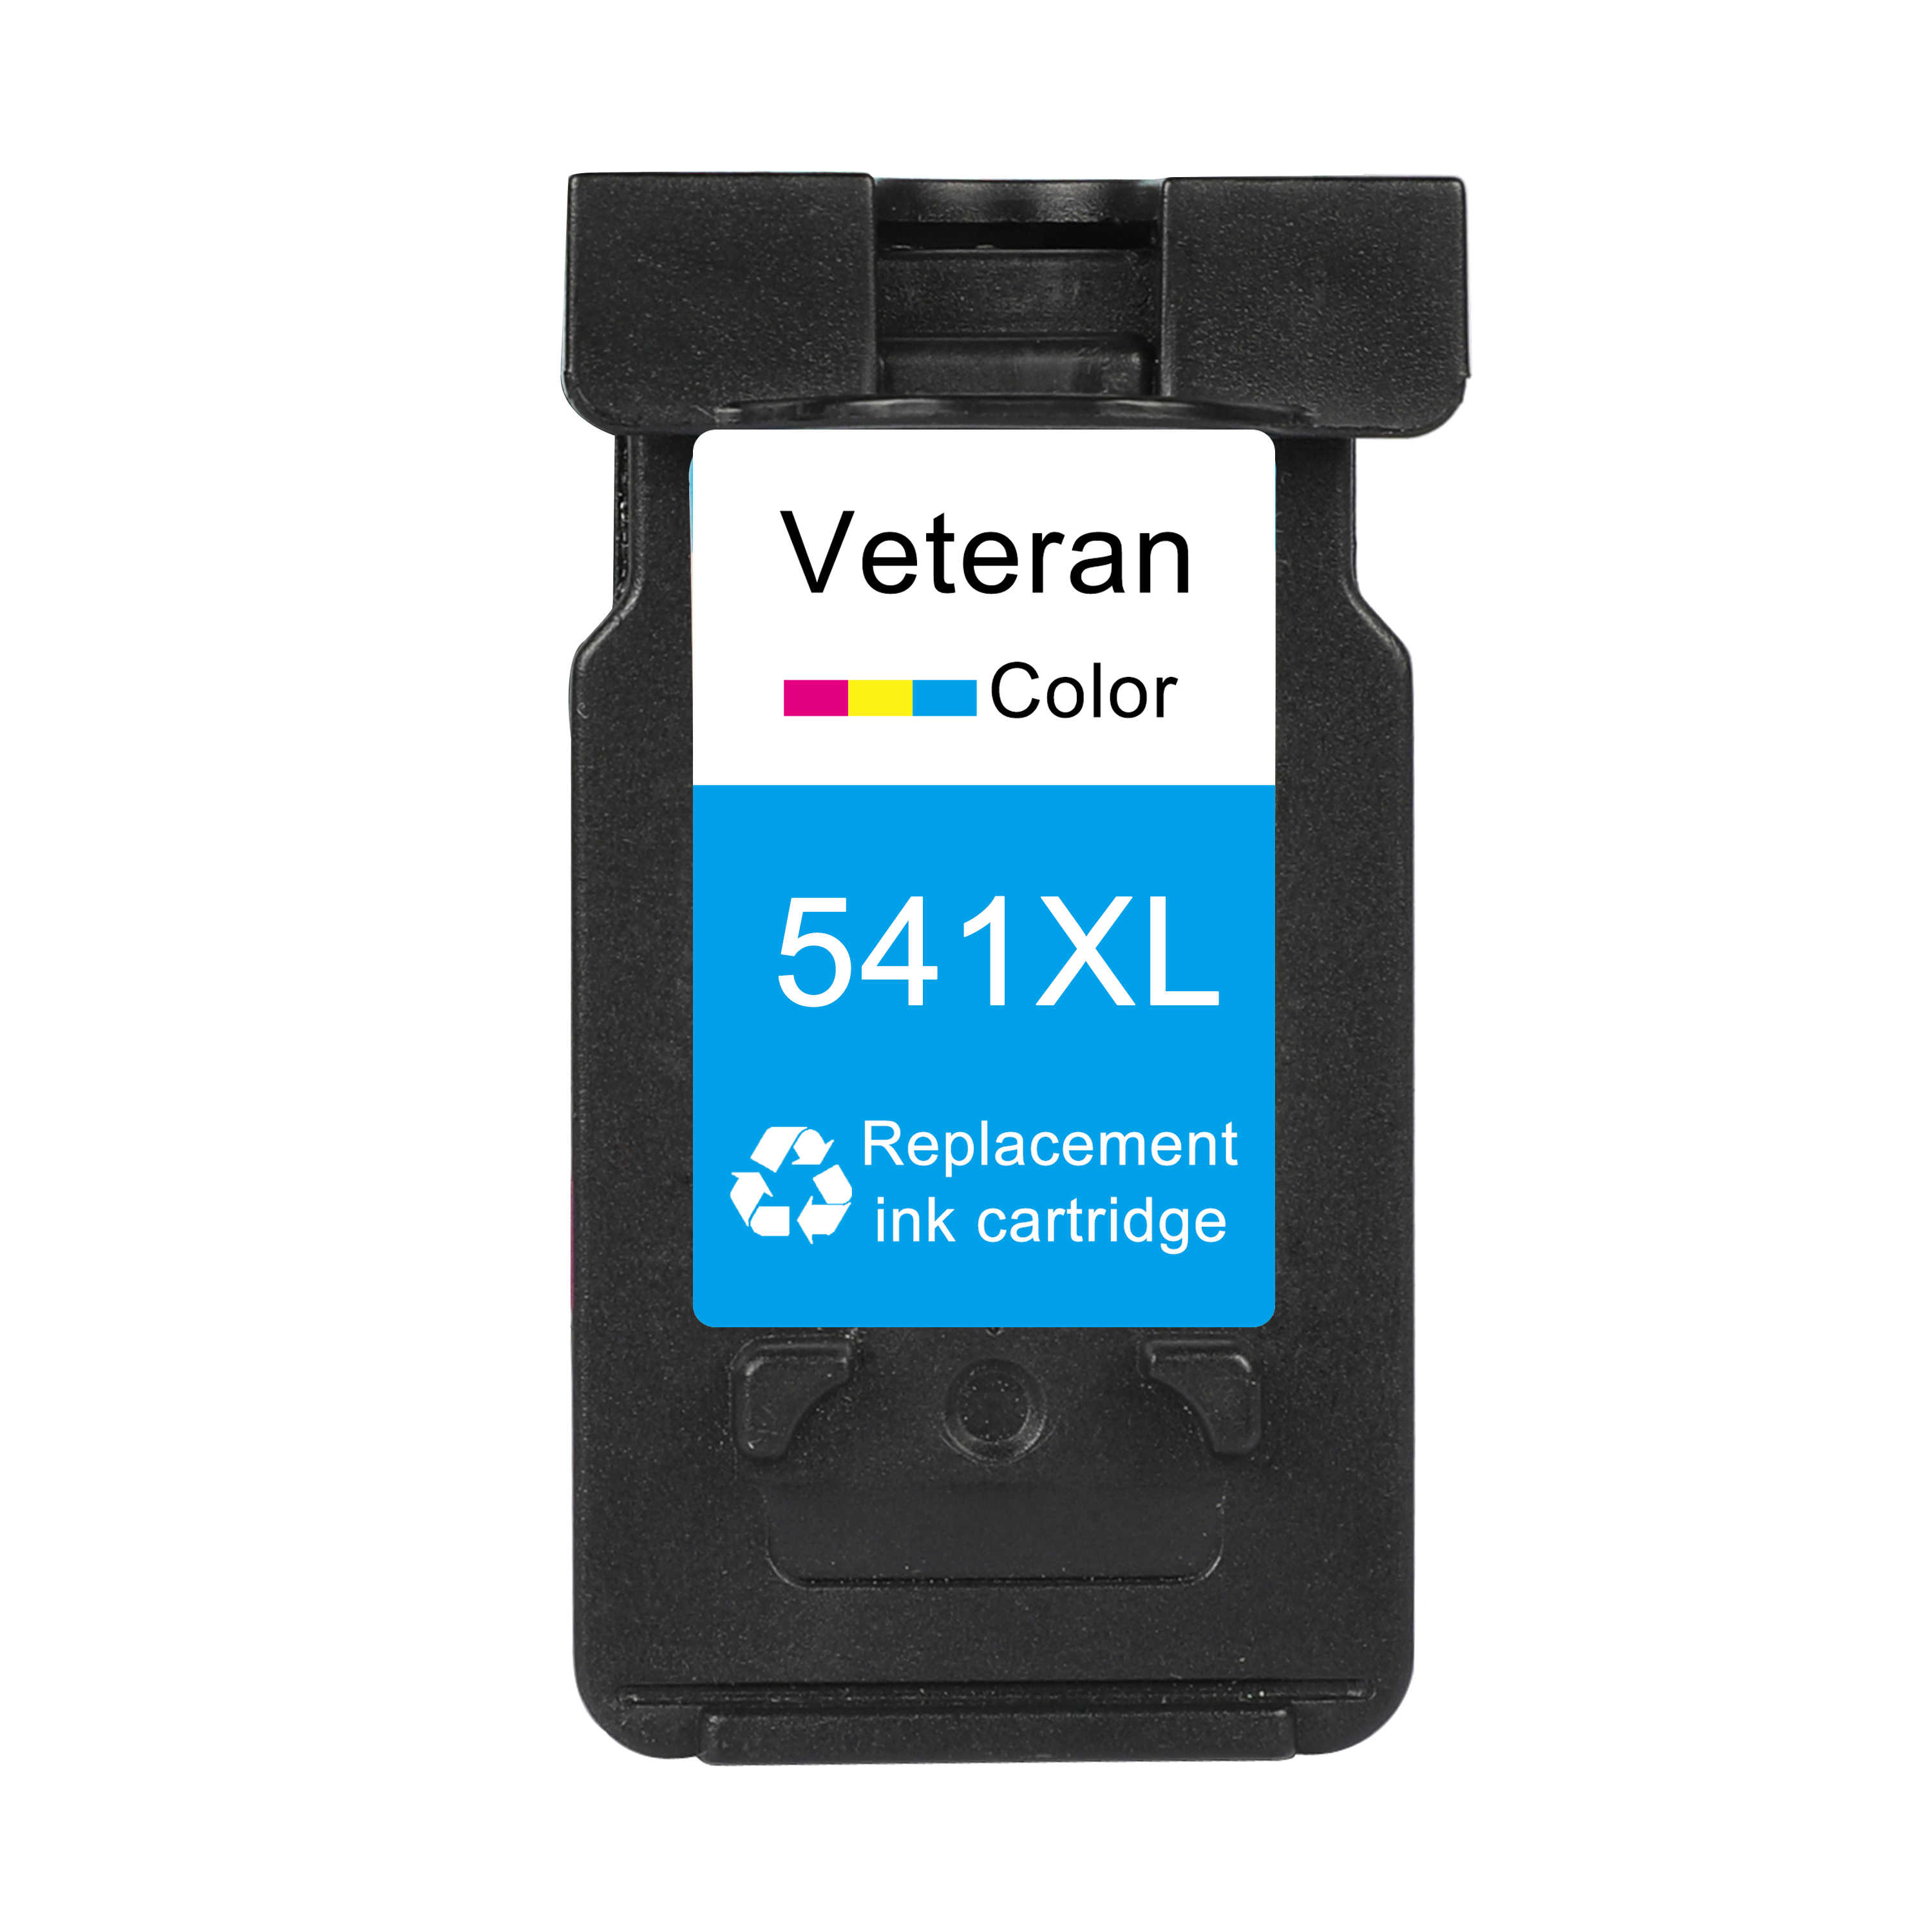 Veteran Ink Cartridge PG540 CL541 untuk Canon PG-540 CL-541 PG 540 Cartridge untuk PIXMA MX375 MX395 MX435 MG2150 MG2250 MG4250